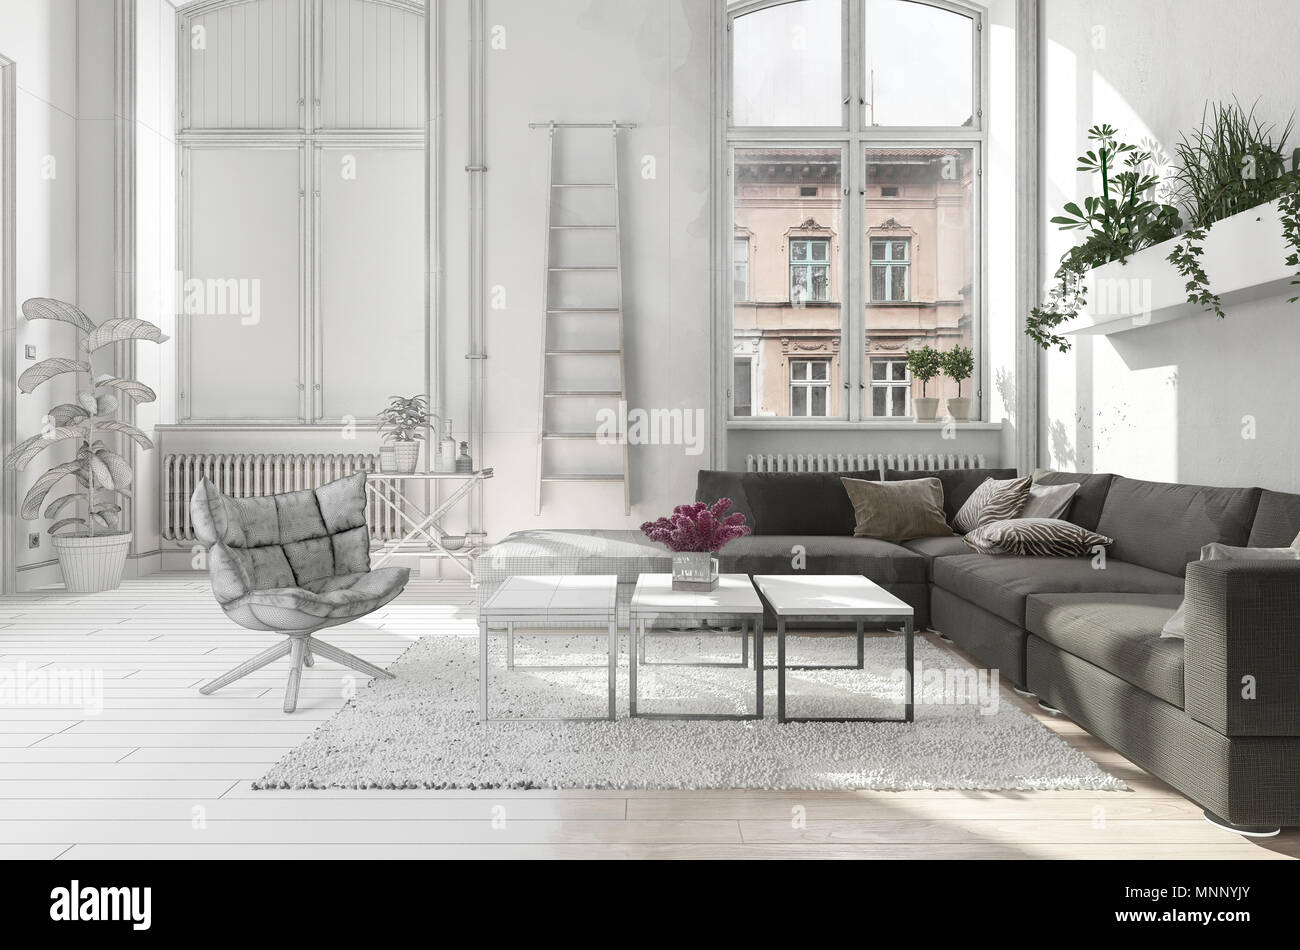 Elegant Stylish Monochrome White Living Room Interior In An Urban Apartment With A Comfortable Sofa In Front Of Tall Bright Windows With Radiators Ch Stock Photo Alamy